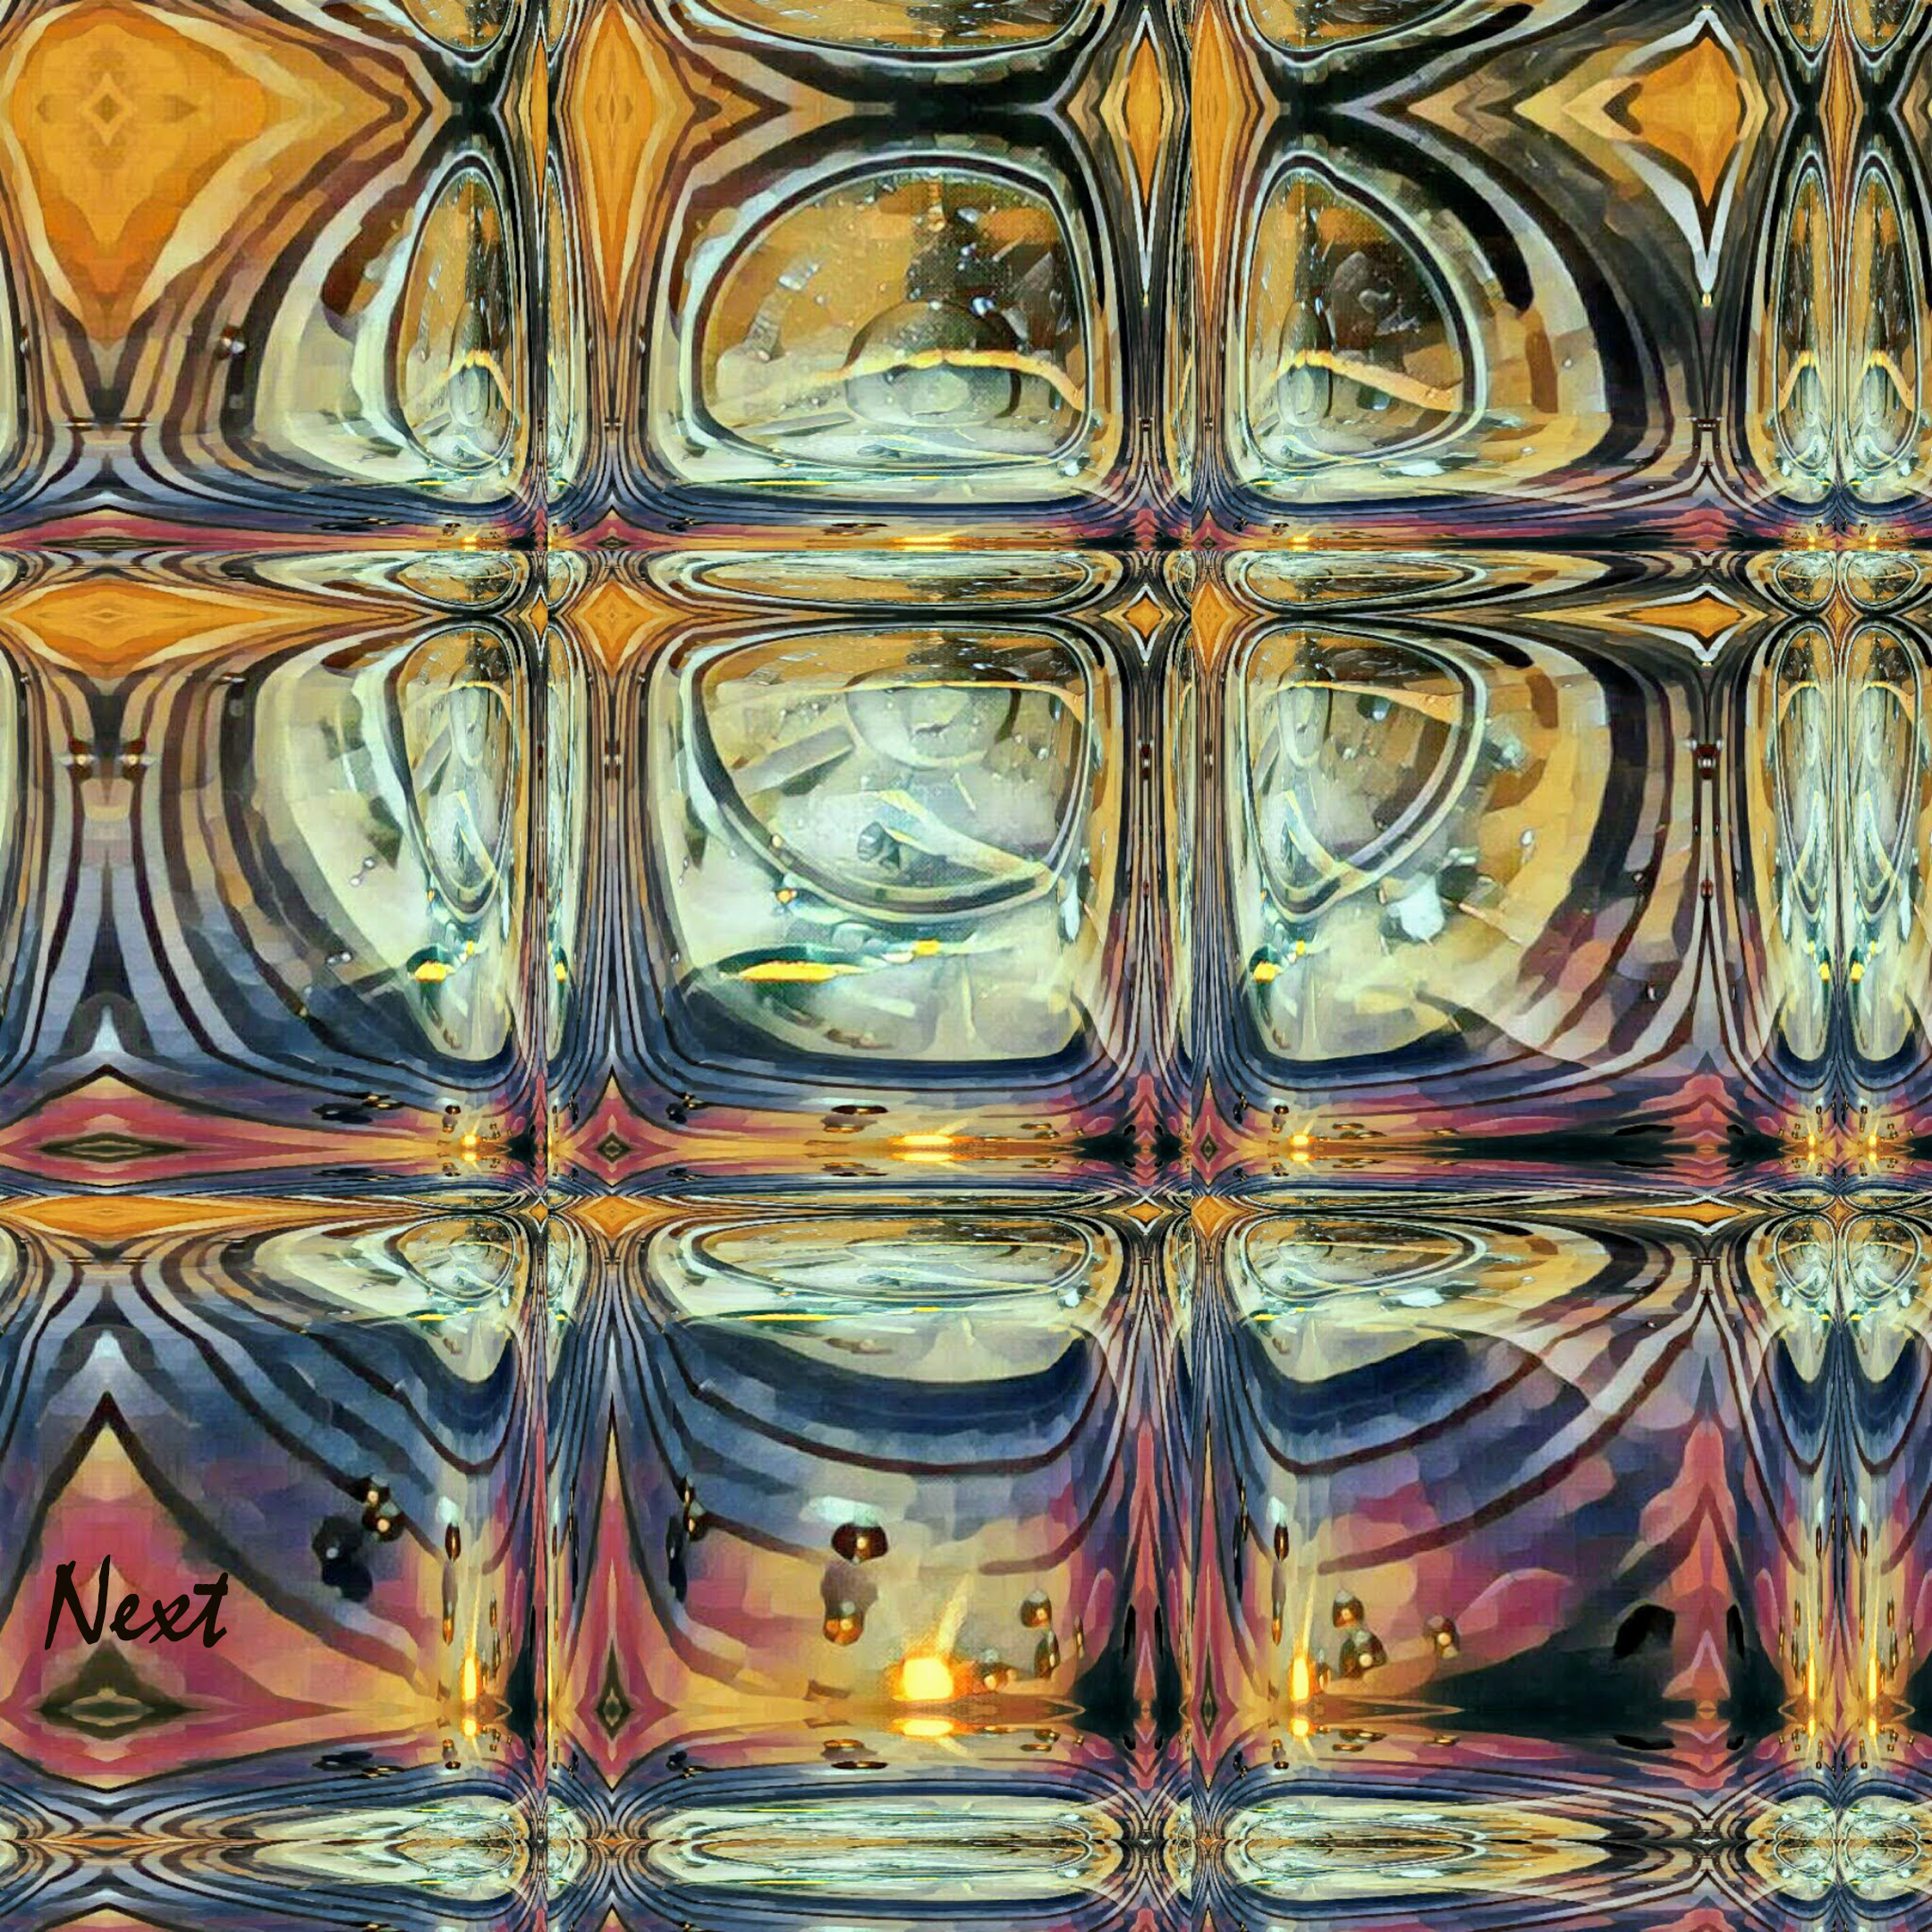 Variation on a waterglass